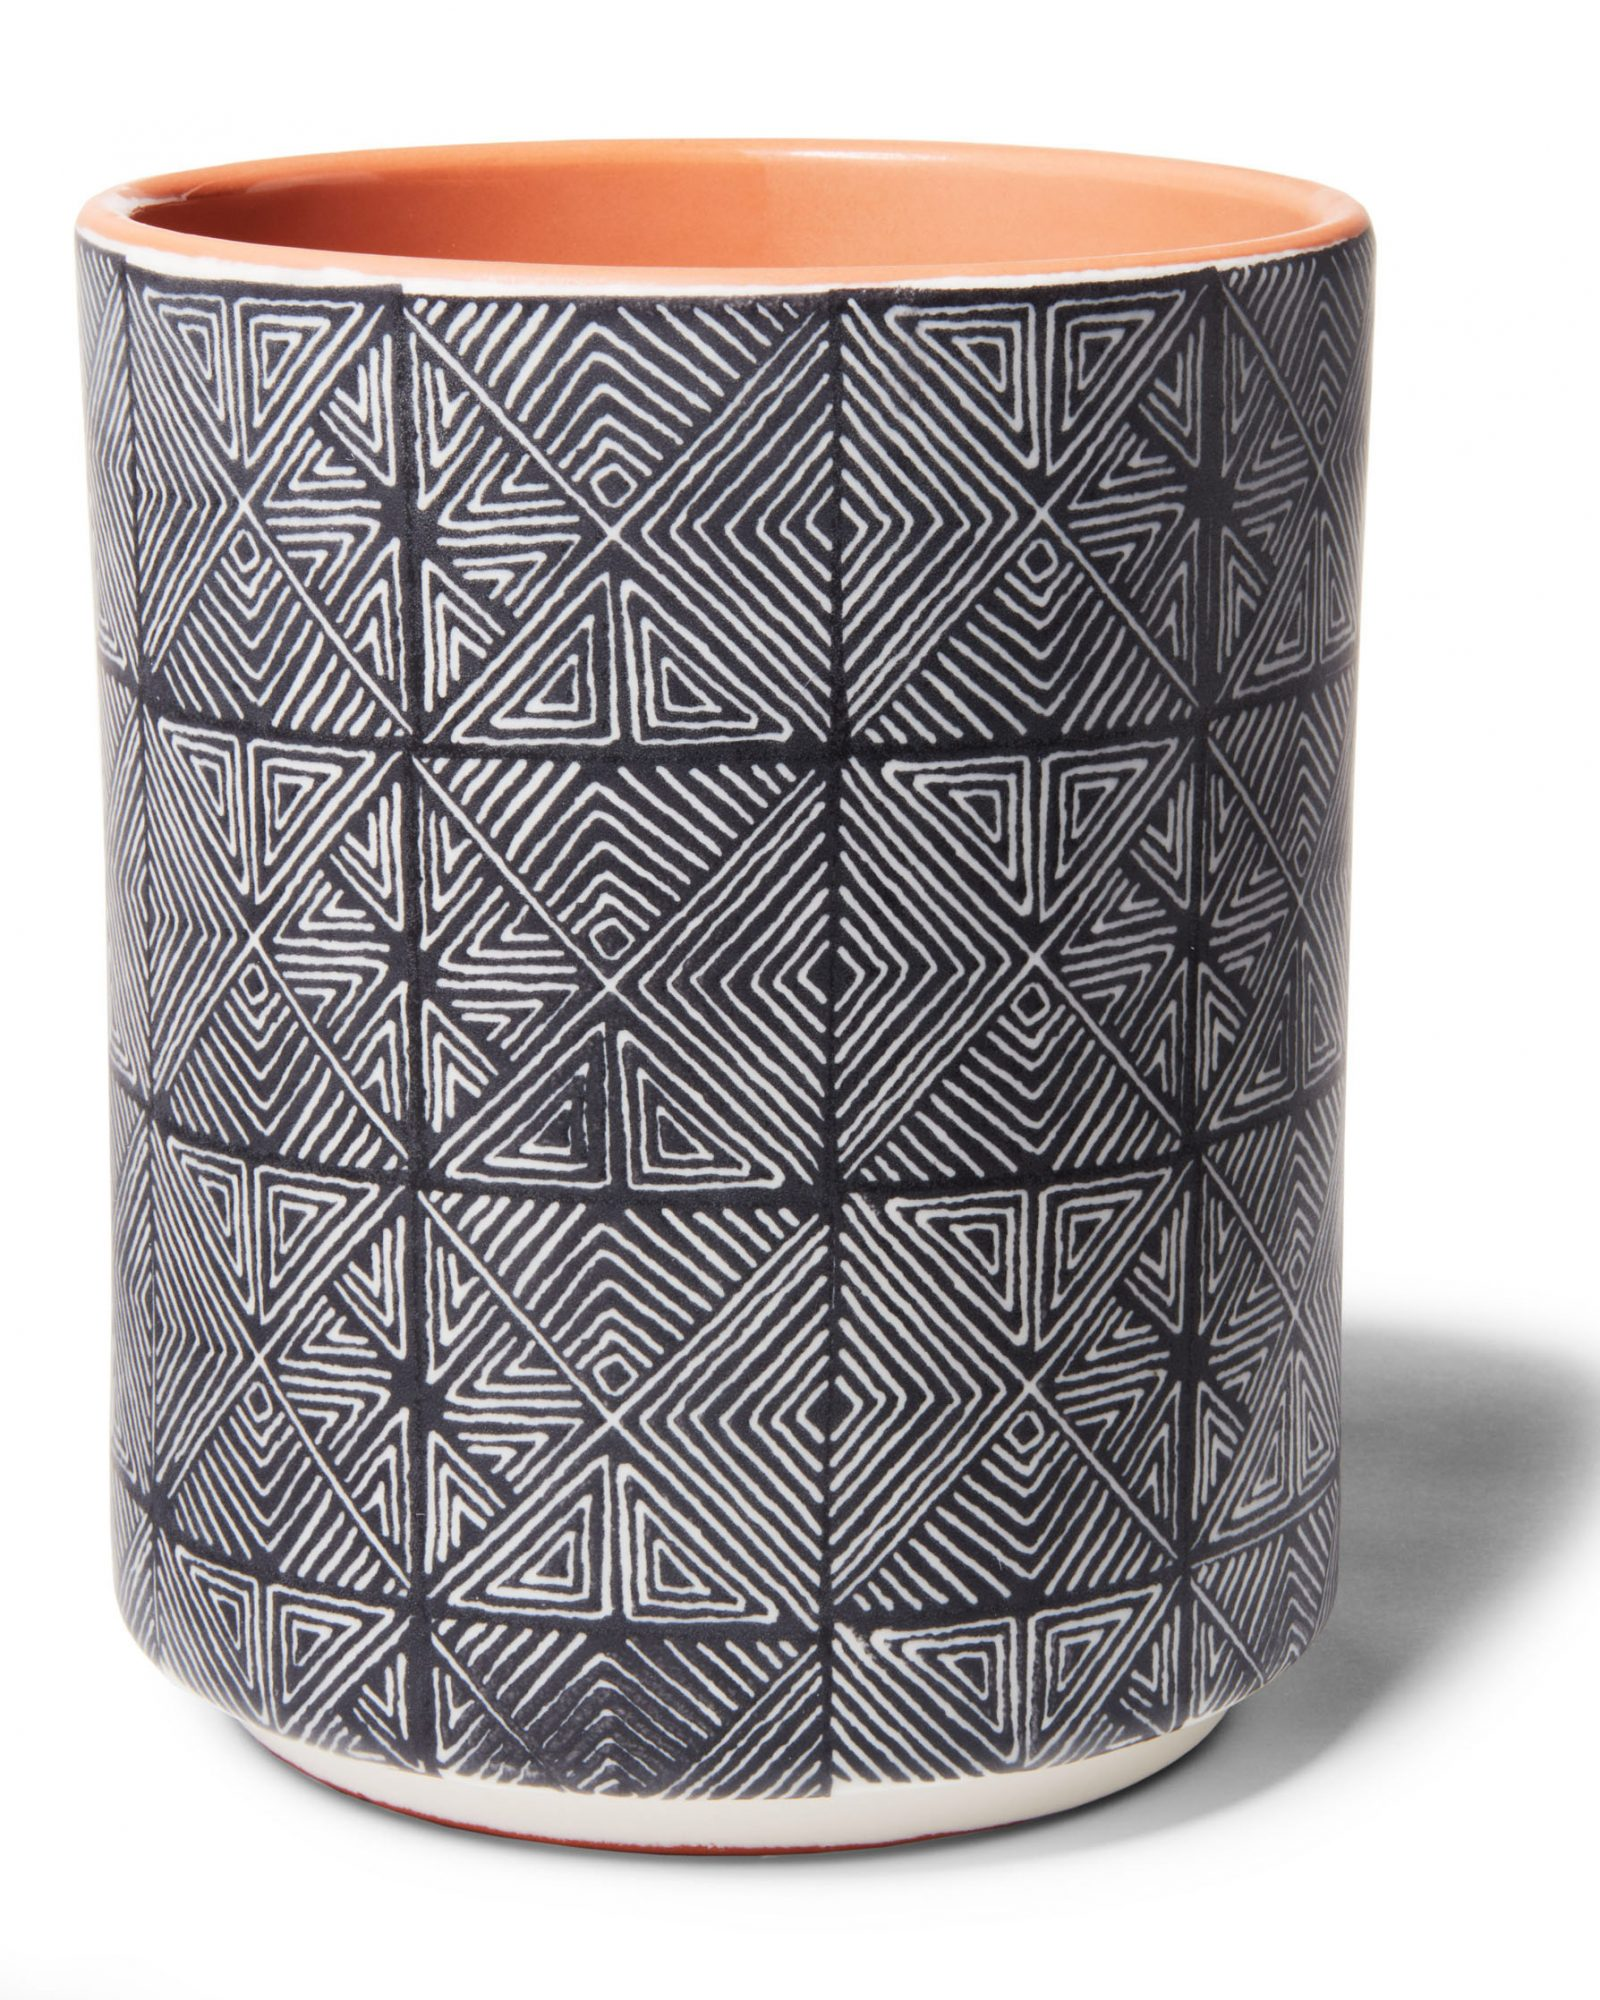 patterned ceramic kitchen tool container